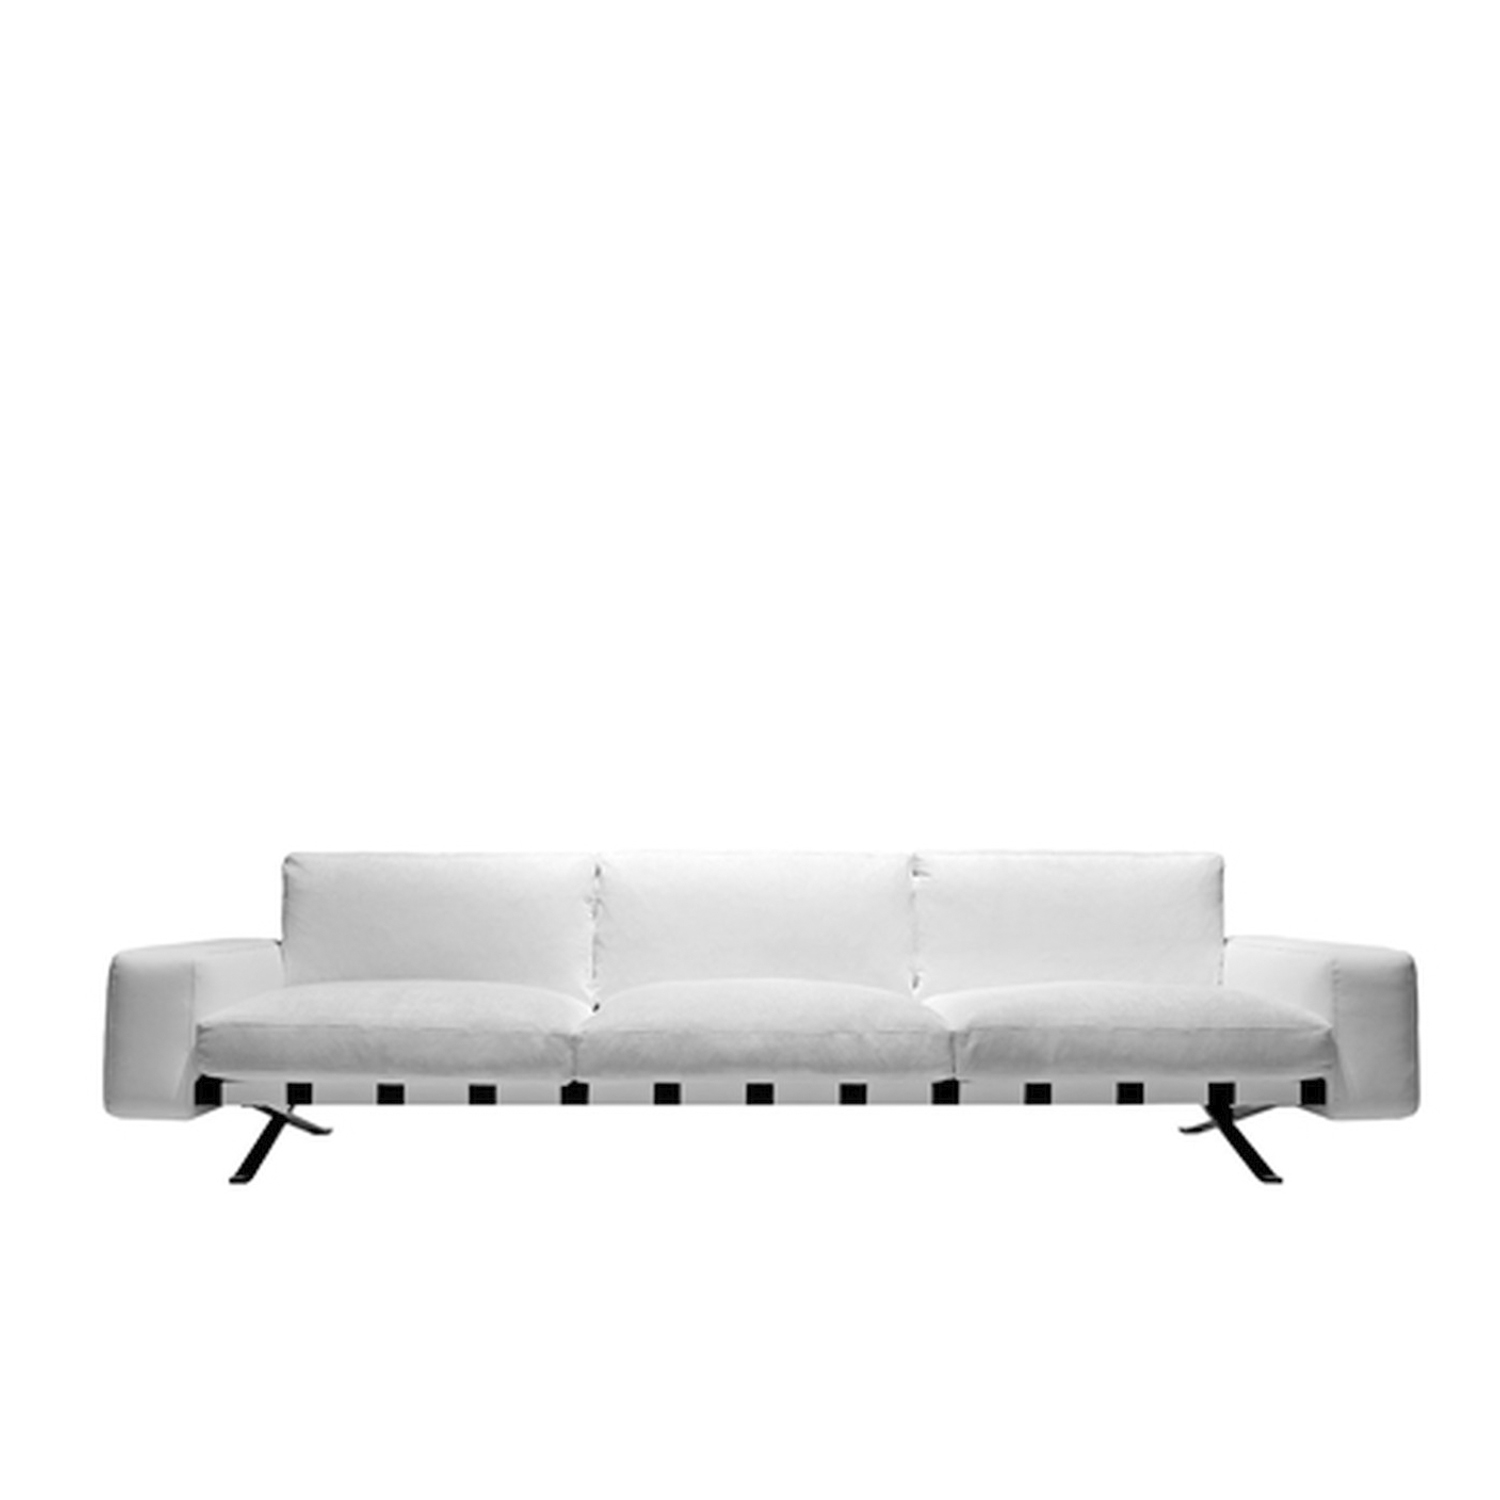 Fenix Three Seater Sofa - The sectional sofa is the theme that has characterized typological design since the 90s of last century. Ludovica and Roberto Palomba confront it, emphasizing the sense of suspension from the ground, thanks to a thin metal structure and developing, in the version with terminals, a great peninsula from the gracefully asymmetric shape. | Matter of Stuff